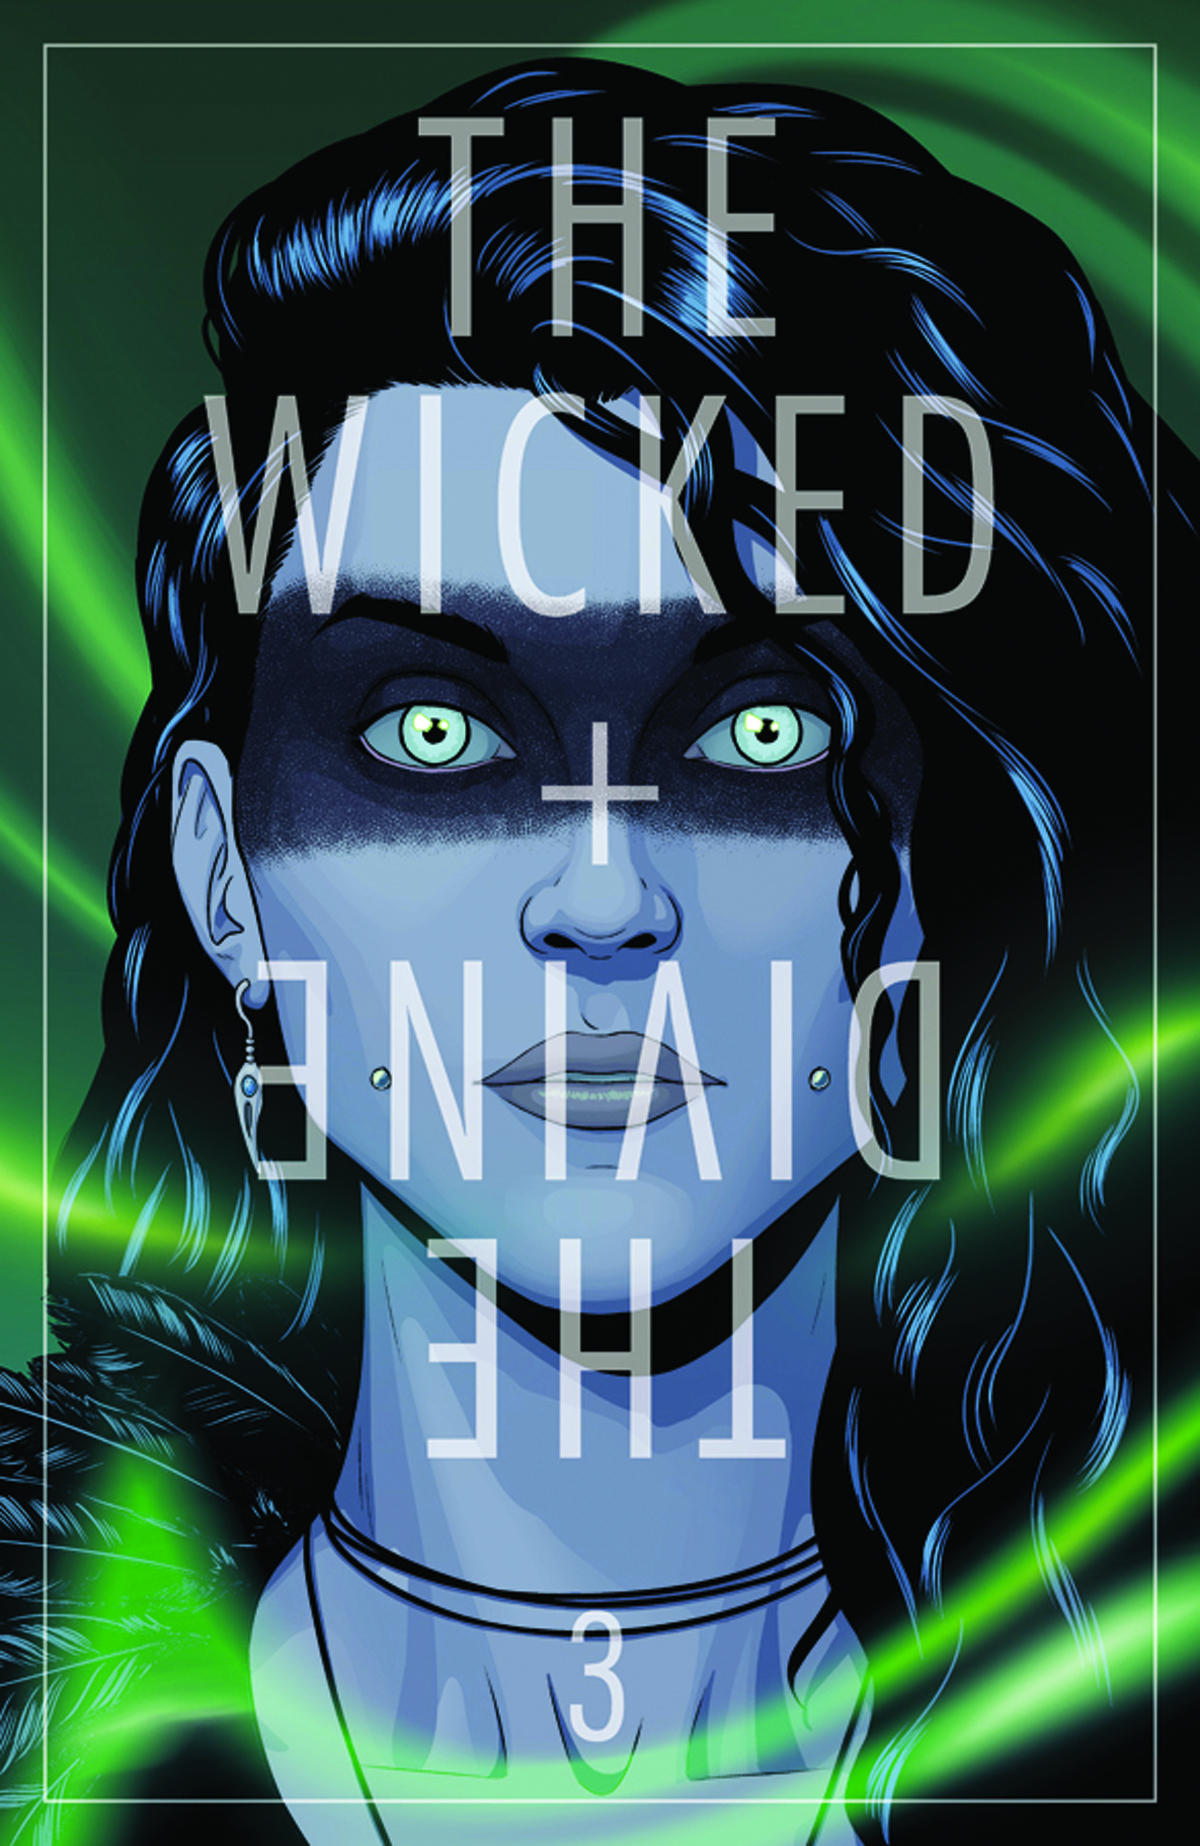 WICKED & DIVINE #3